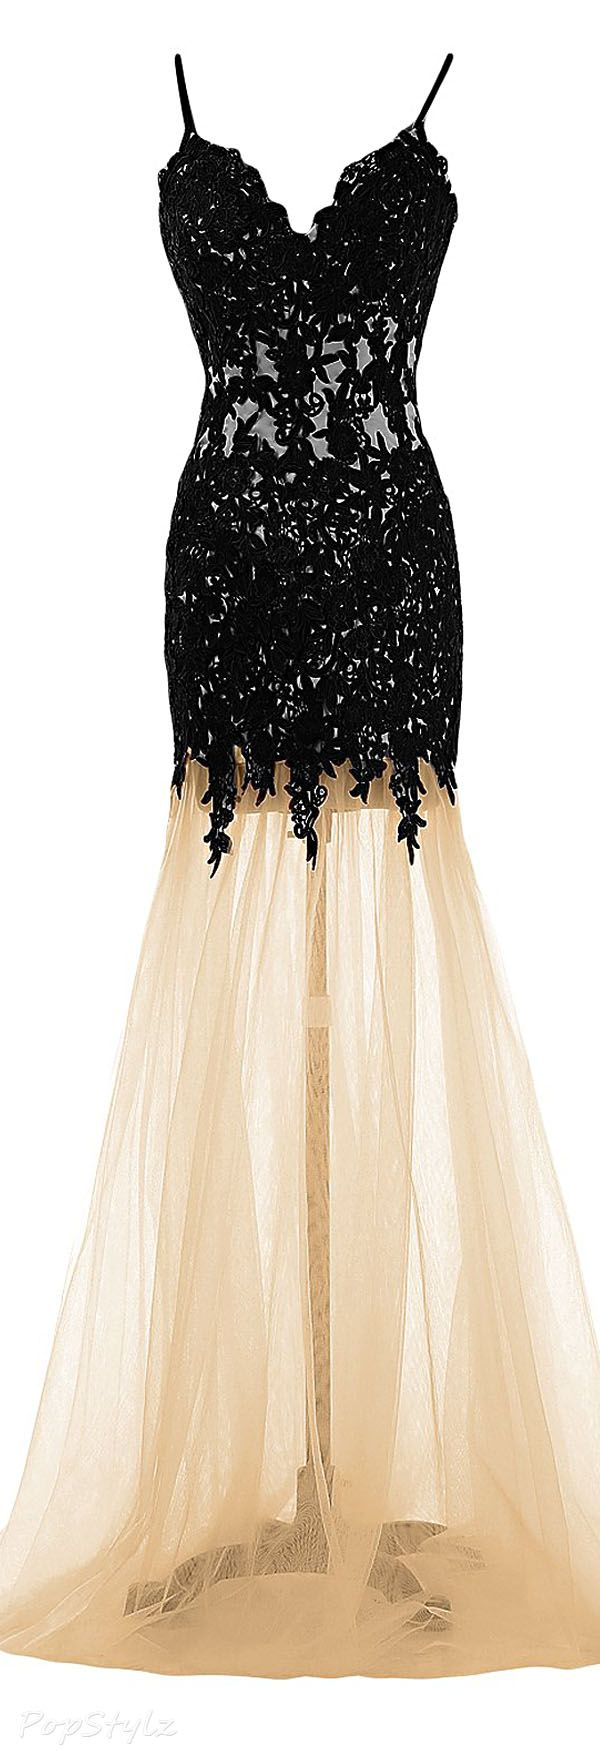 Sunvary mermaid tulle u lace evening gown style scout pinterest